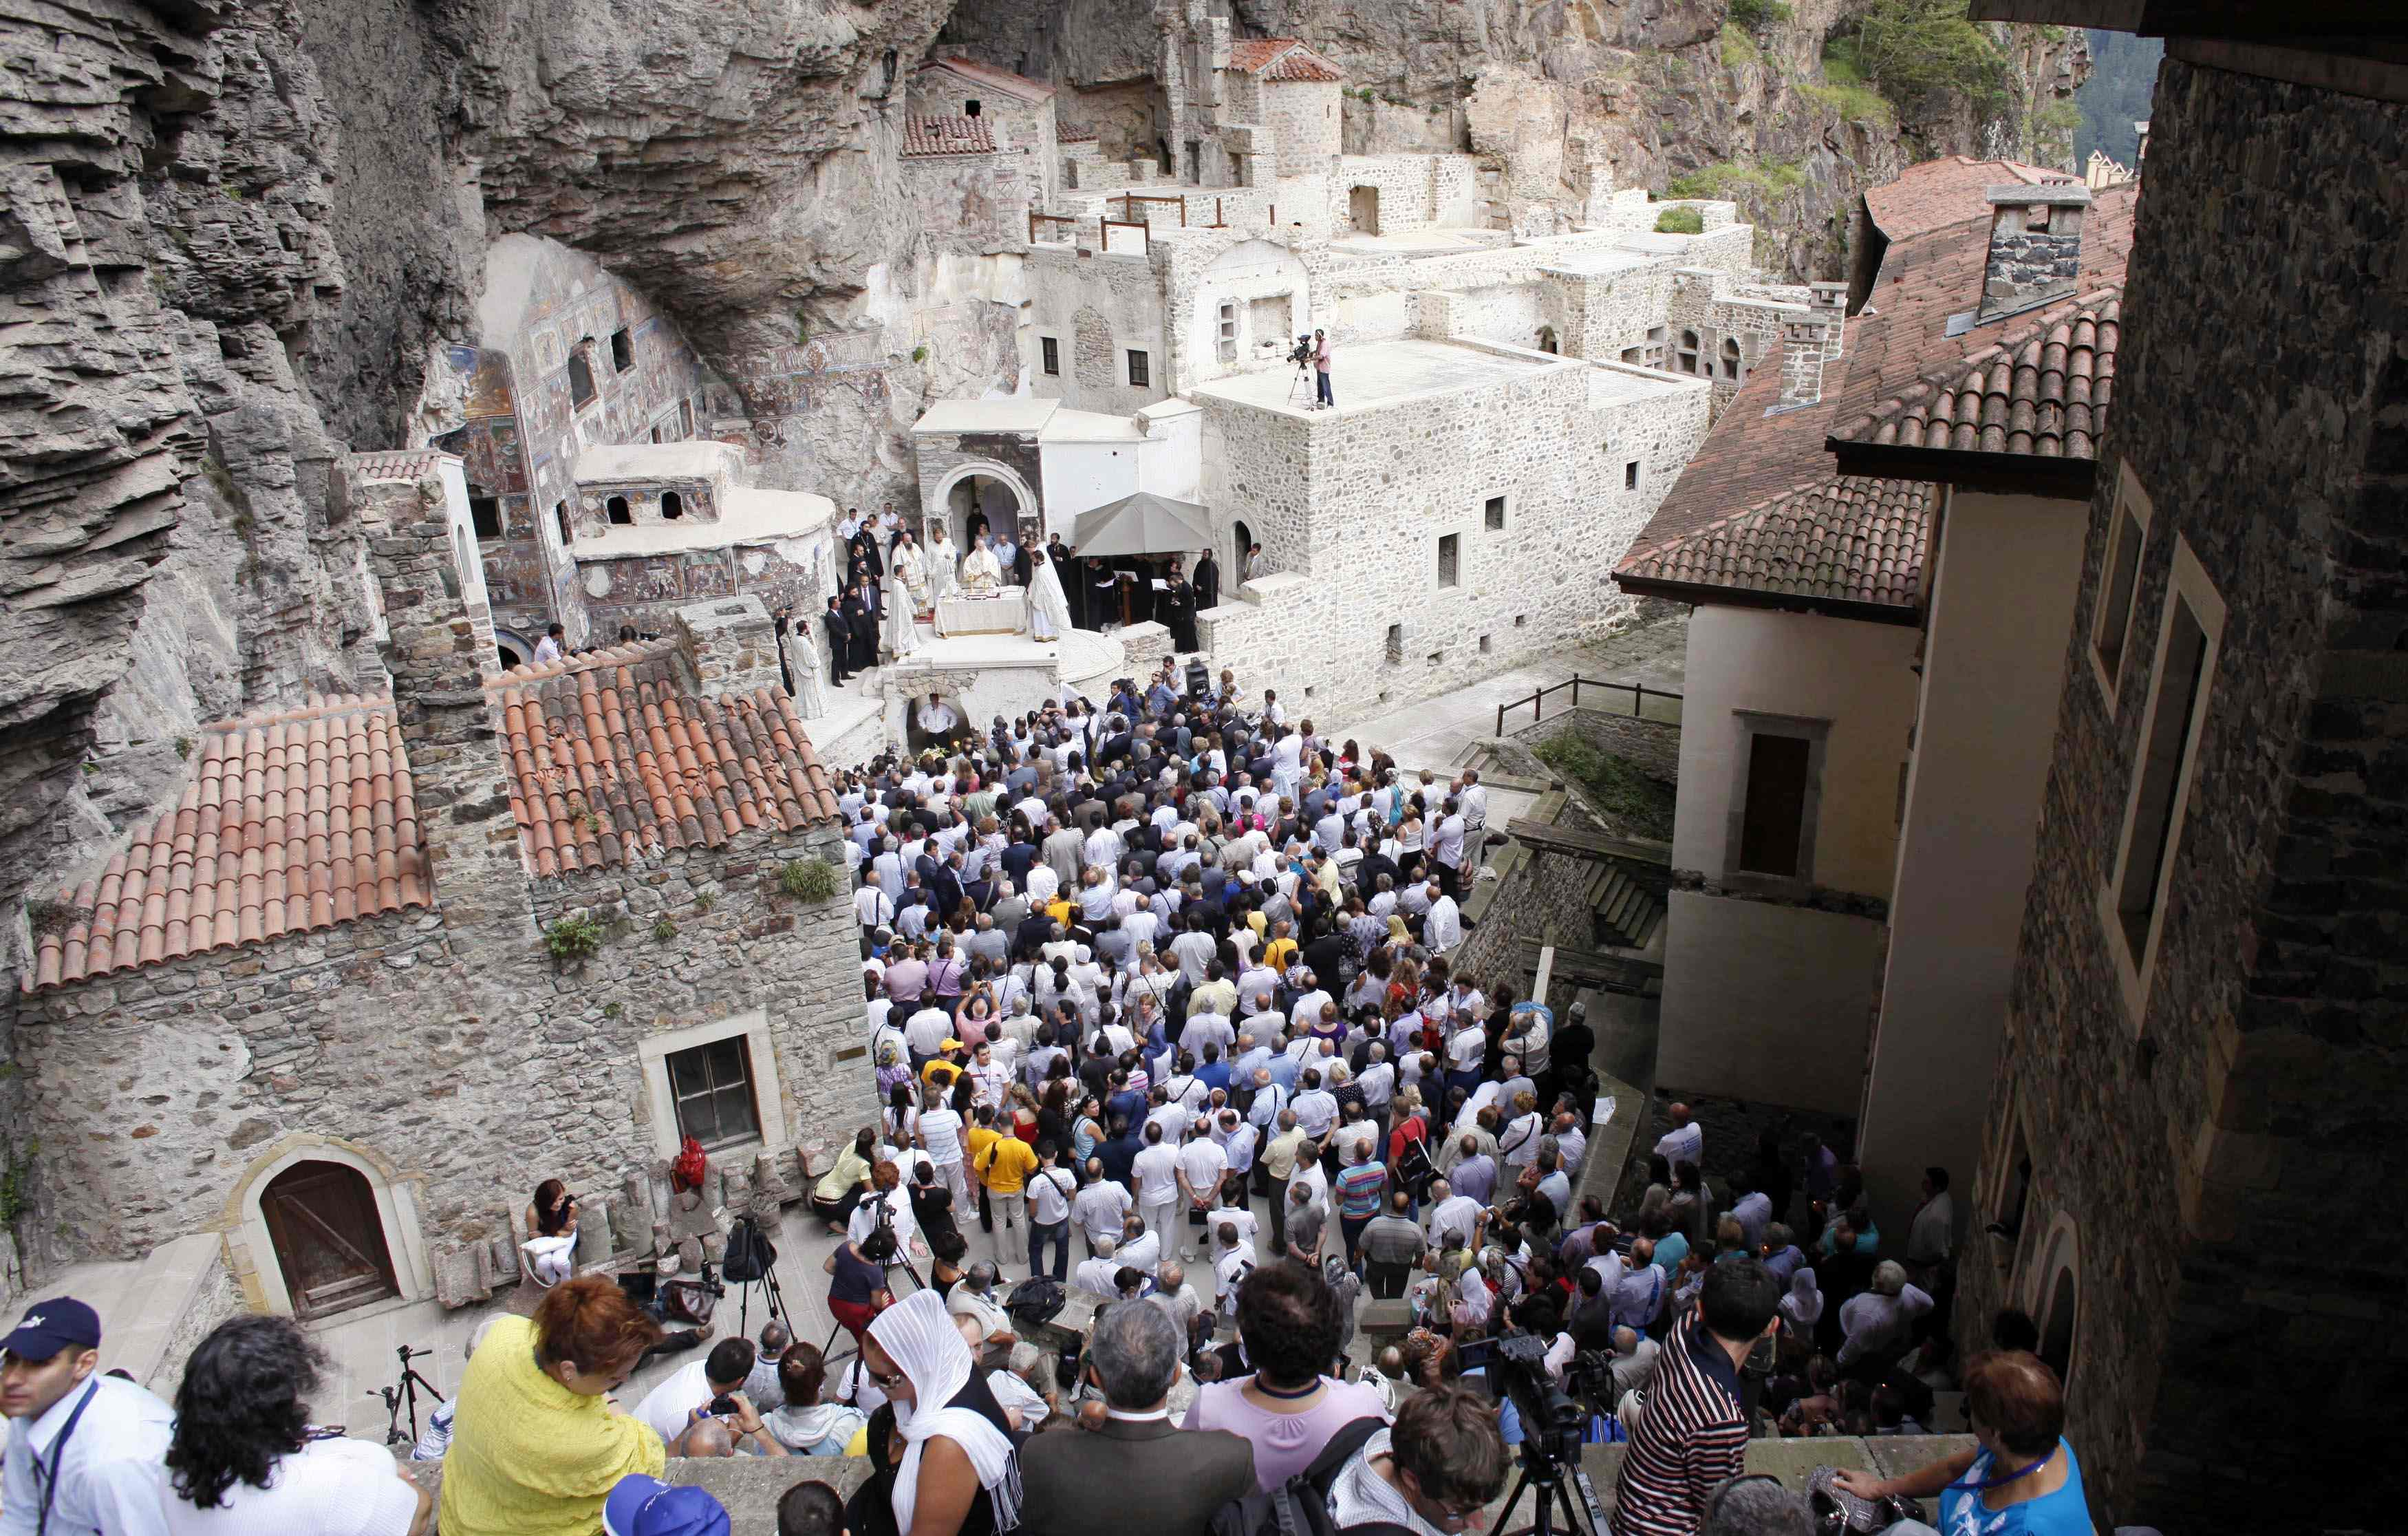 Orthodox worshippers attend the Virgin Mary service led by Ecumenical Greek Orthodox Patriarch Bartholomew I at the ancient Sumela Monastery in the Black Sea coastal province of Trabzon, northeastern Turkey, August 15, 2010. Thousands of Orthodox pilgrims from Greece, Russia and Georgia attended the mass at the monastery for the first time since 1923. To match Feature TURKEY-ORTHODOX/. REUTERS/Umit Bektas (TURKEY - Tags: RELIGION SOCIETY)